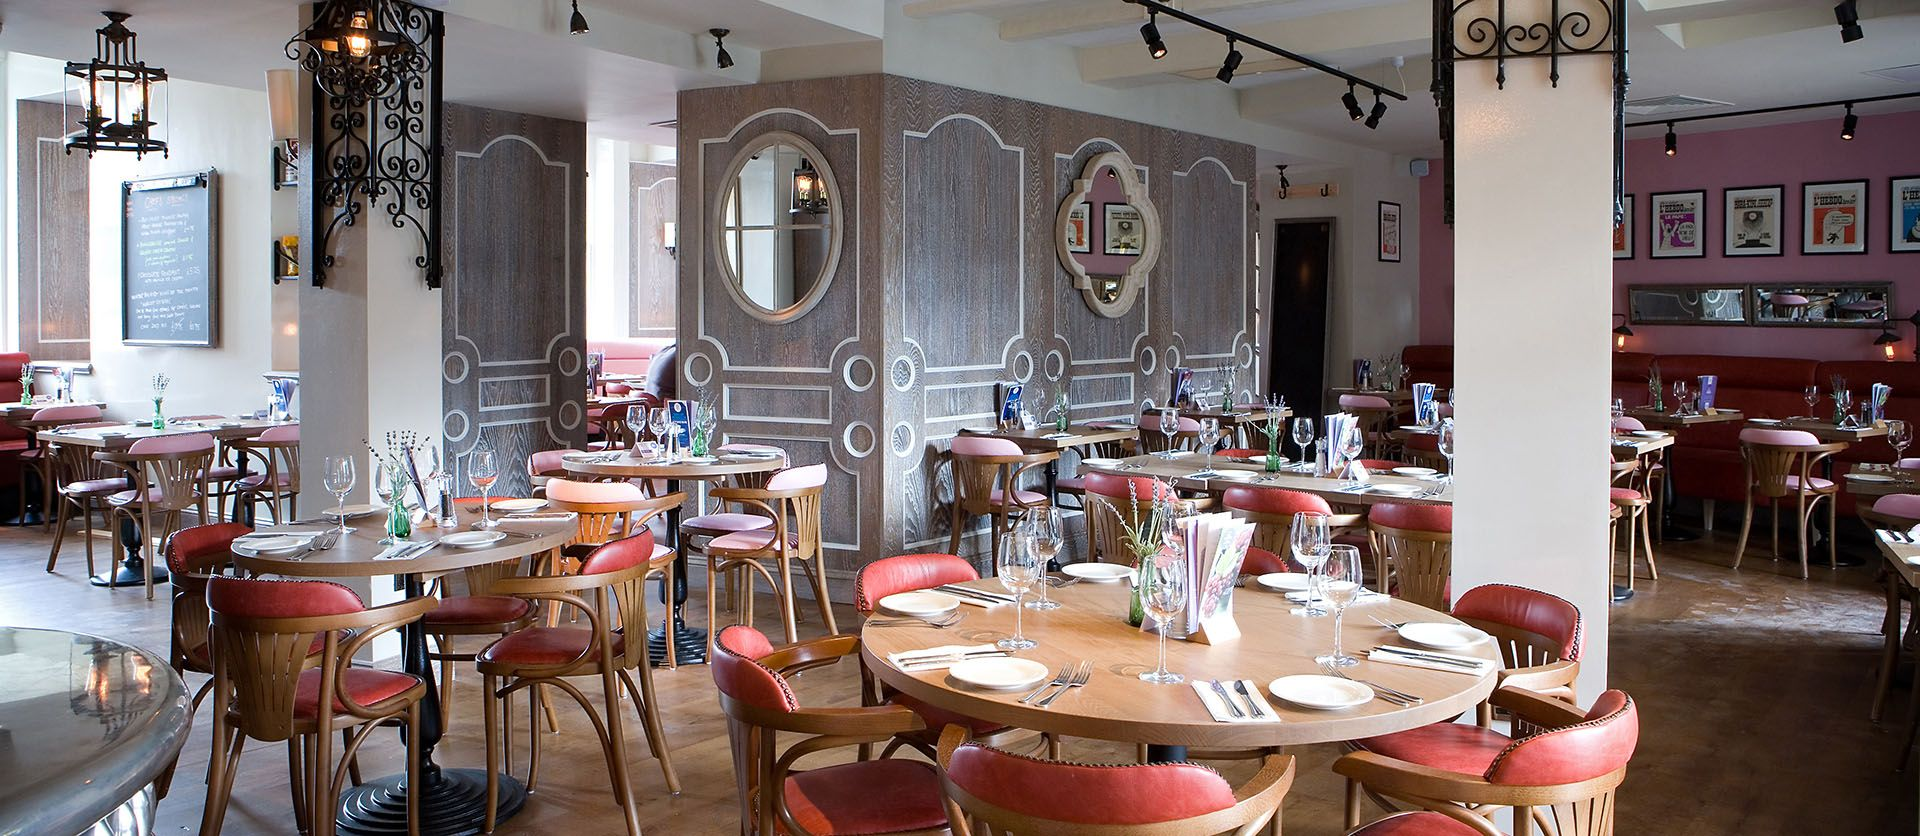 Le Bistrot Pierre In Ilkley Uk Designed By Robert Angell Interior Design Programs Luxury Interior Design Design